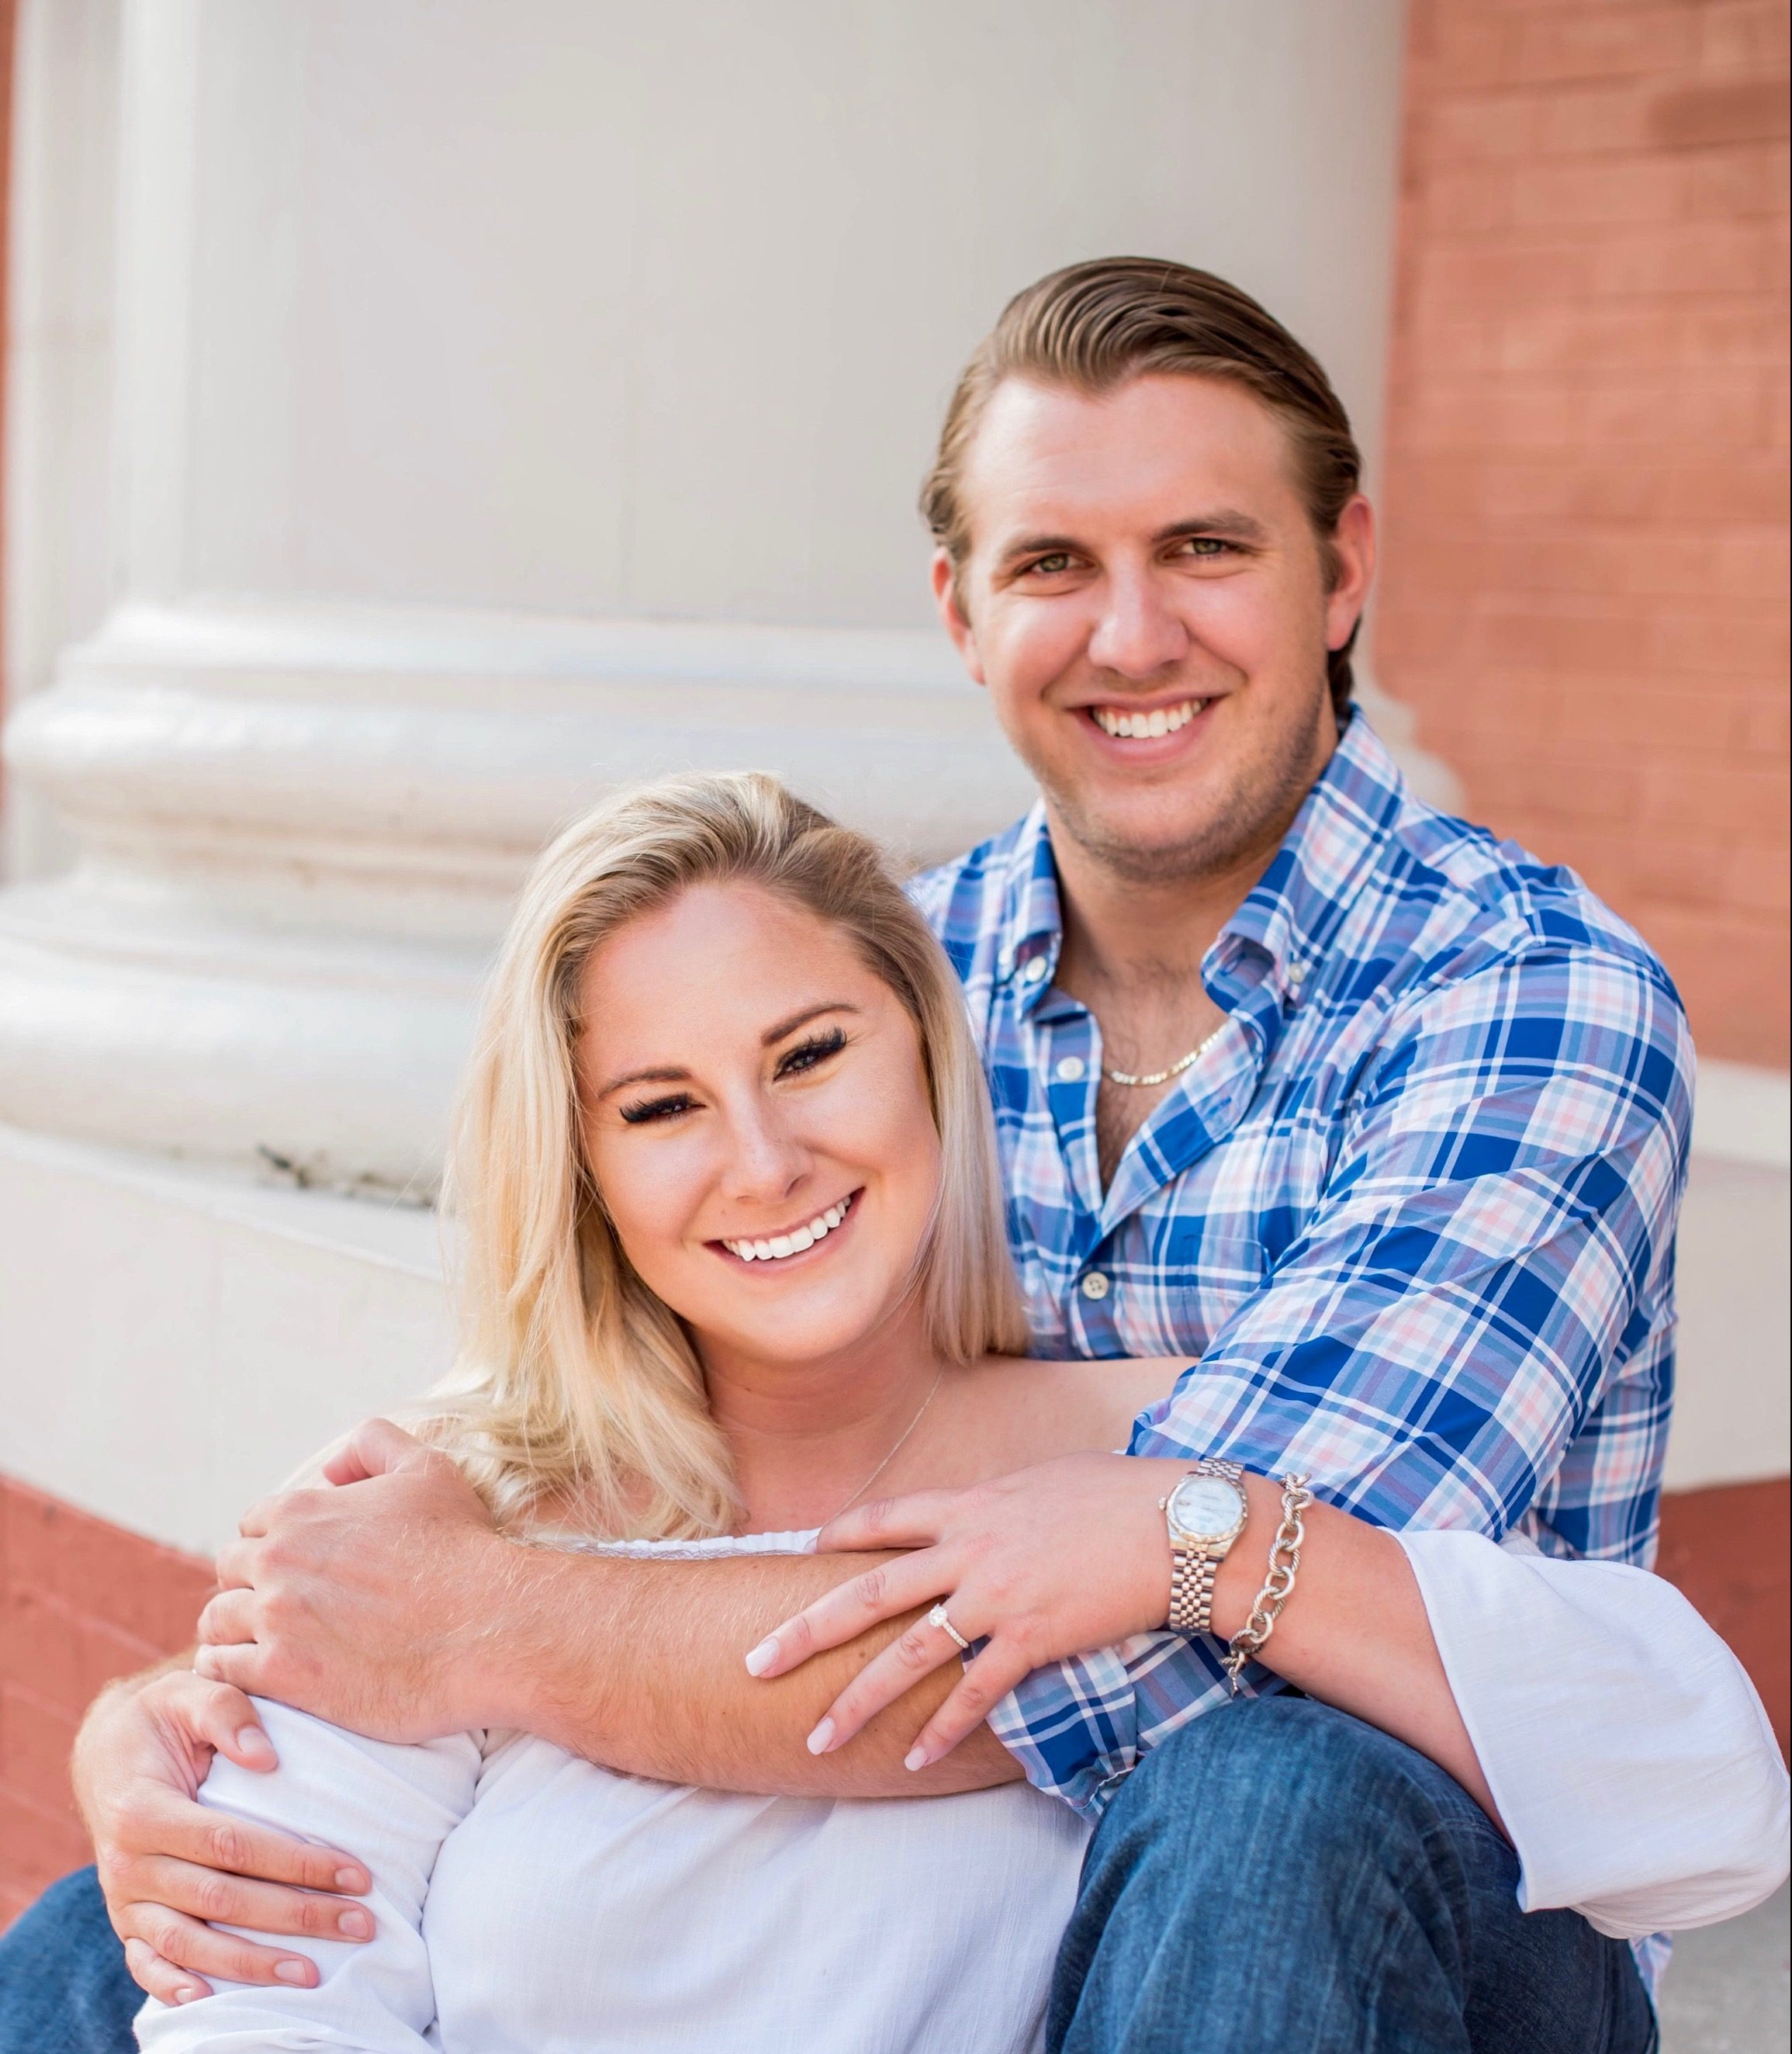 Engagement Proposal Ideas in Stetson University - DeLand, Florida